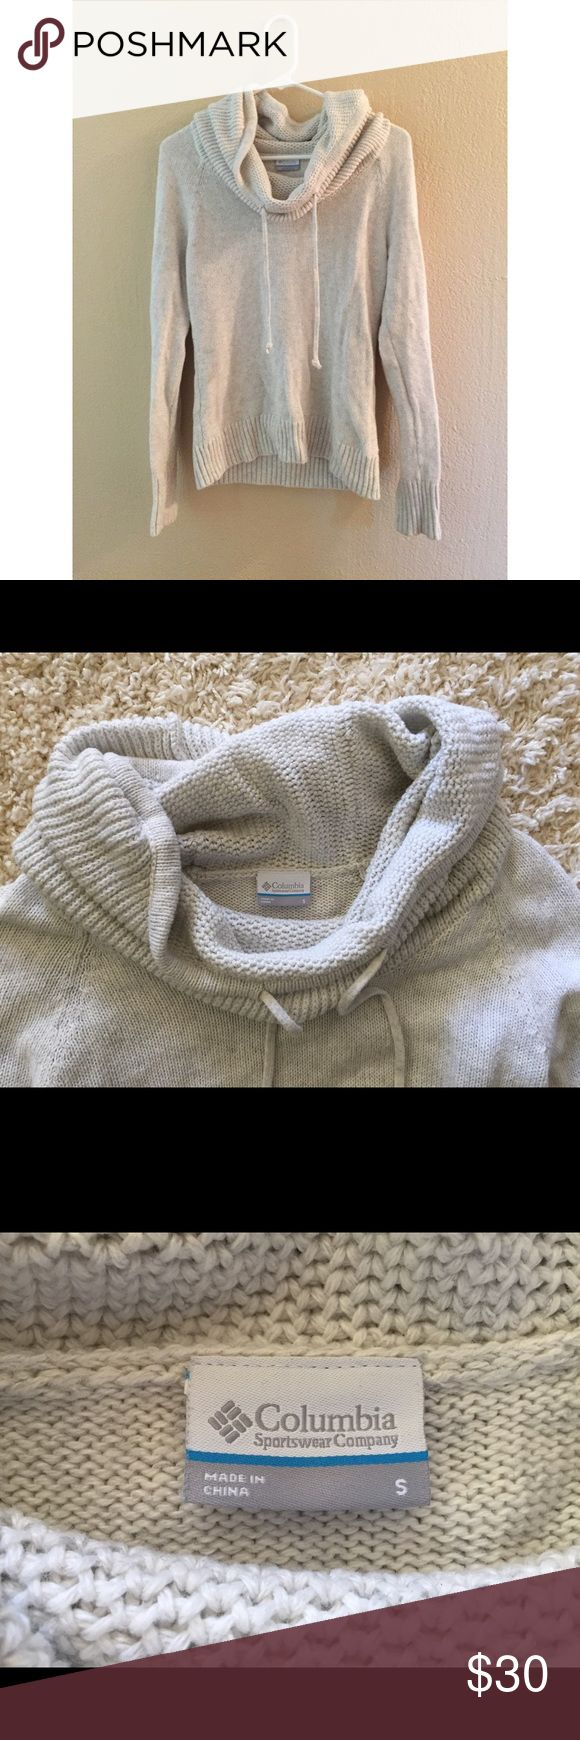 Columbia Sportswear Company Knit Sweater Perfect for fall. Cowl neck with pull strings. Columbia Sweaters Cowl & Turtlenecks